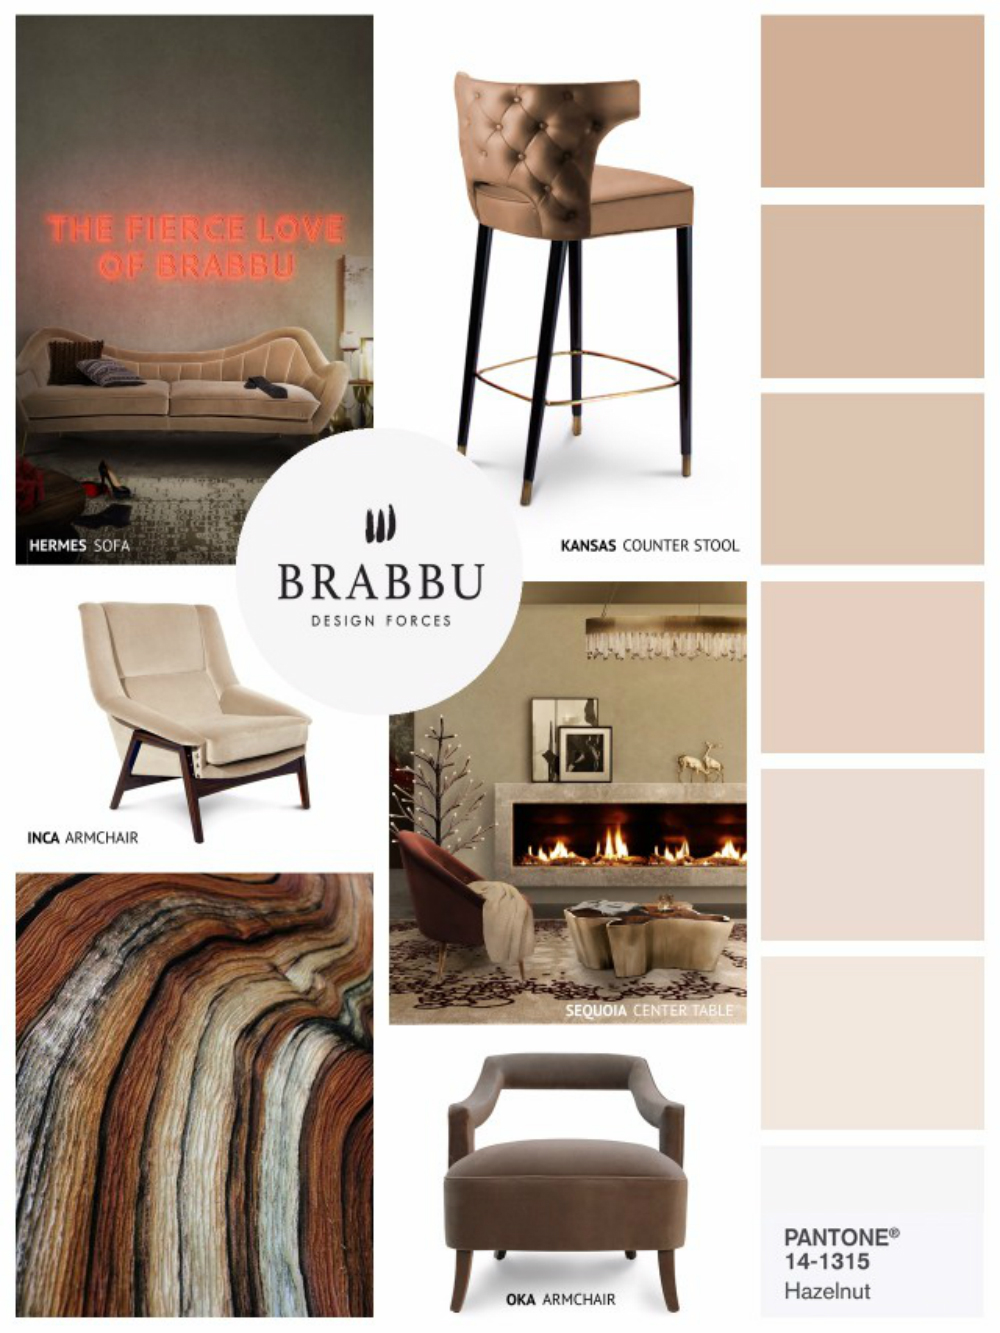 home decor color trends for spring 2017 according to pantone color trends home decor color trends